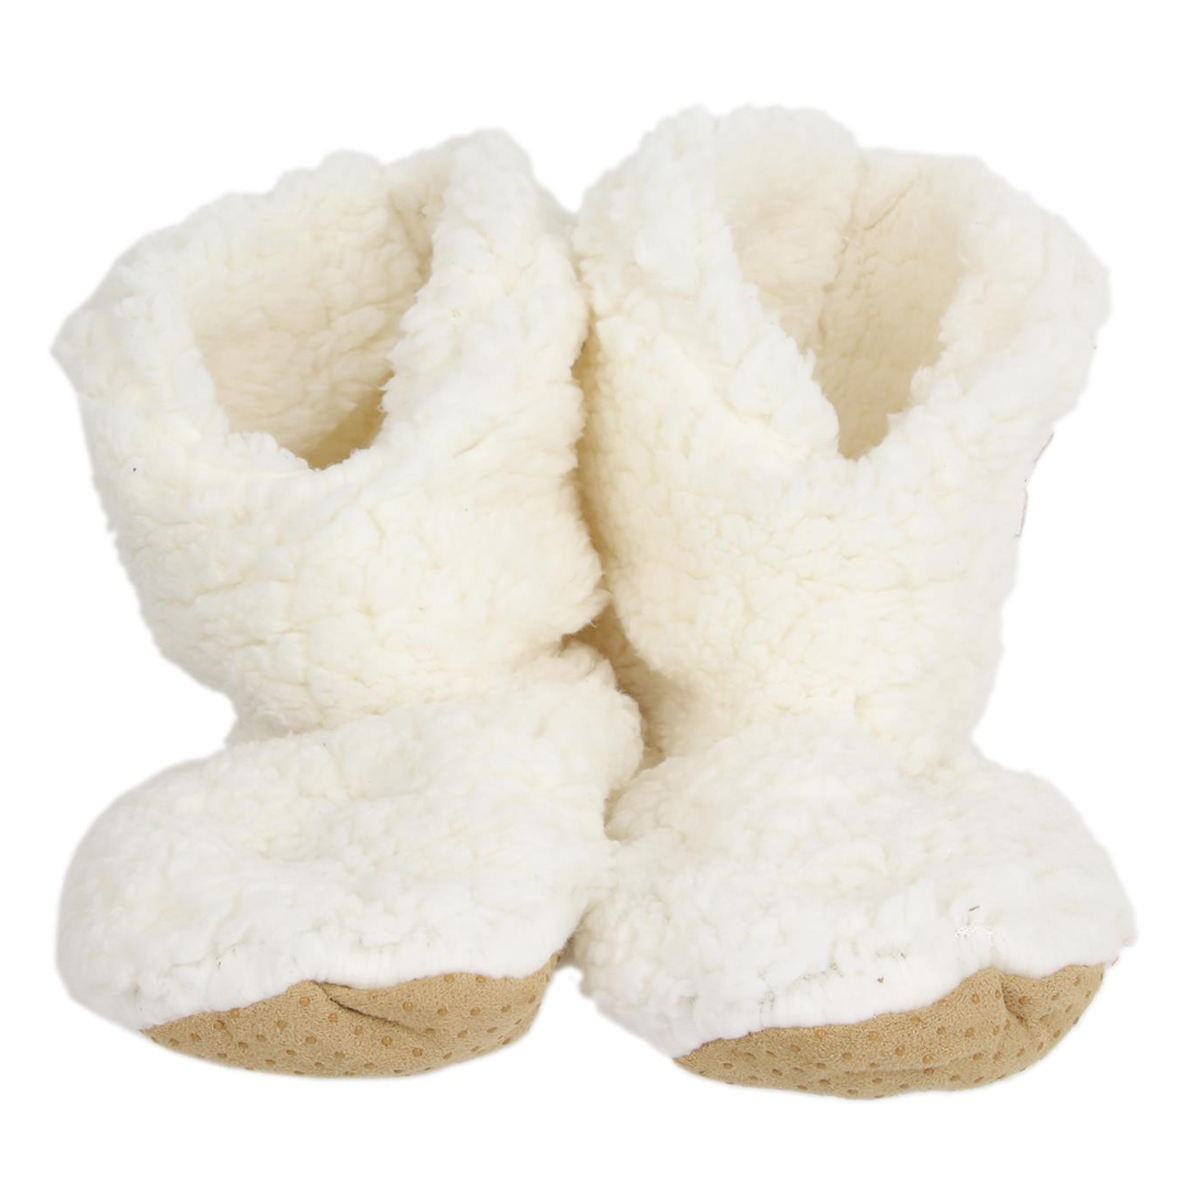 Chausson hiver \'Sherpa\' beige - taille 36-37 - [A0040]